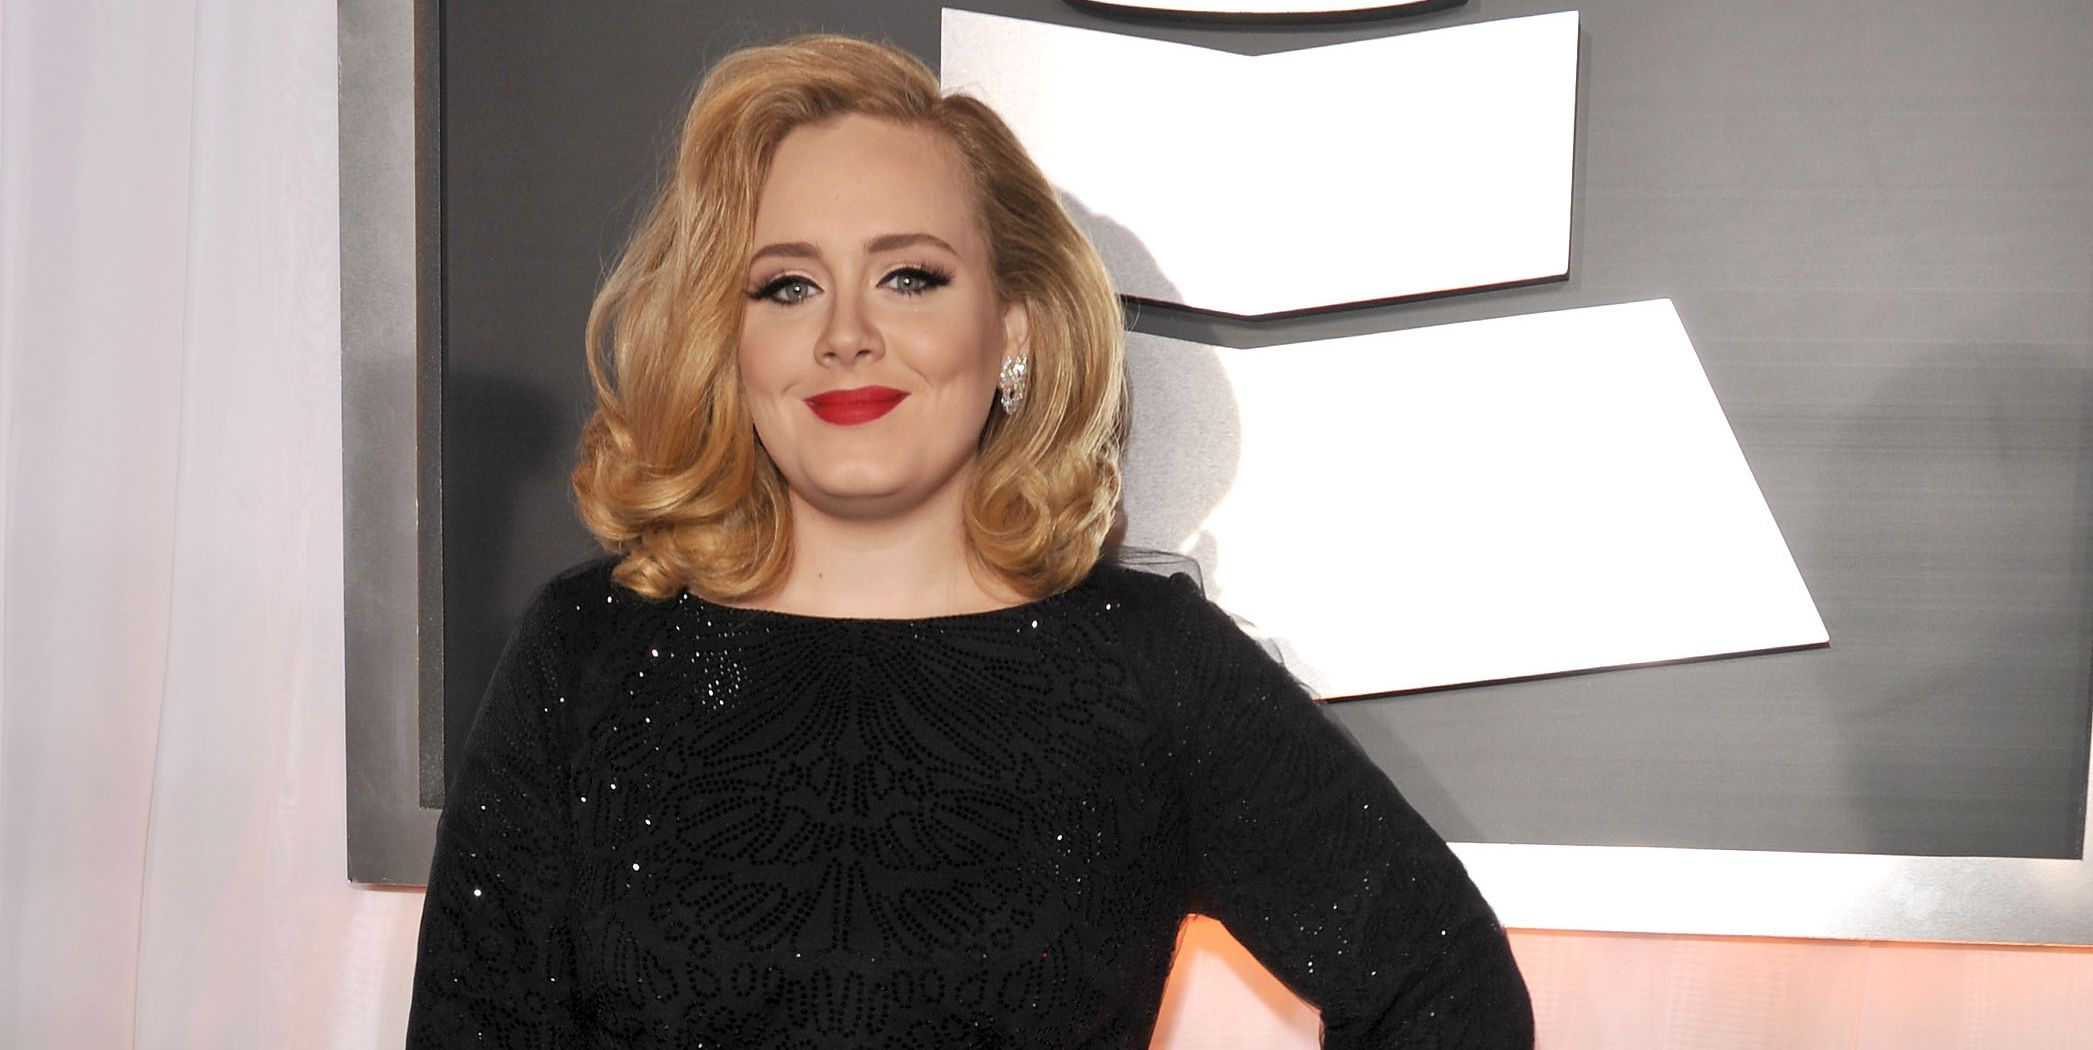 Why Adele and Simon Konecki Are Getting a $180 Million Divorce